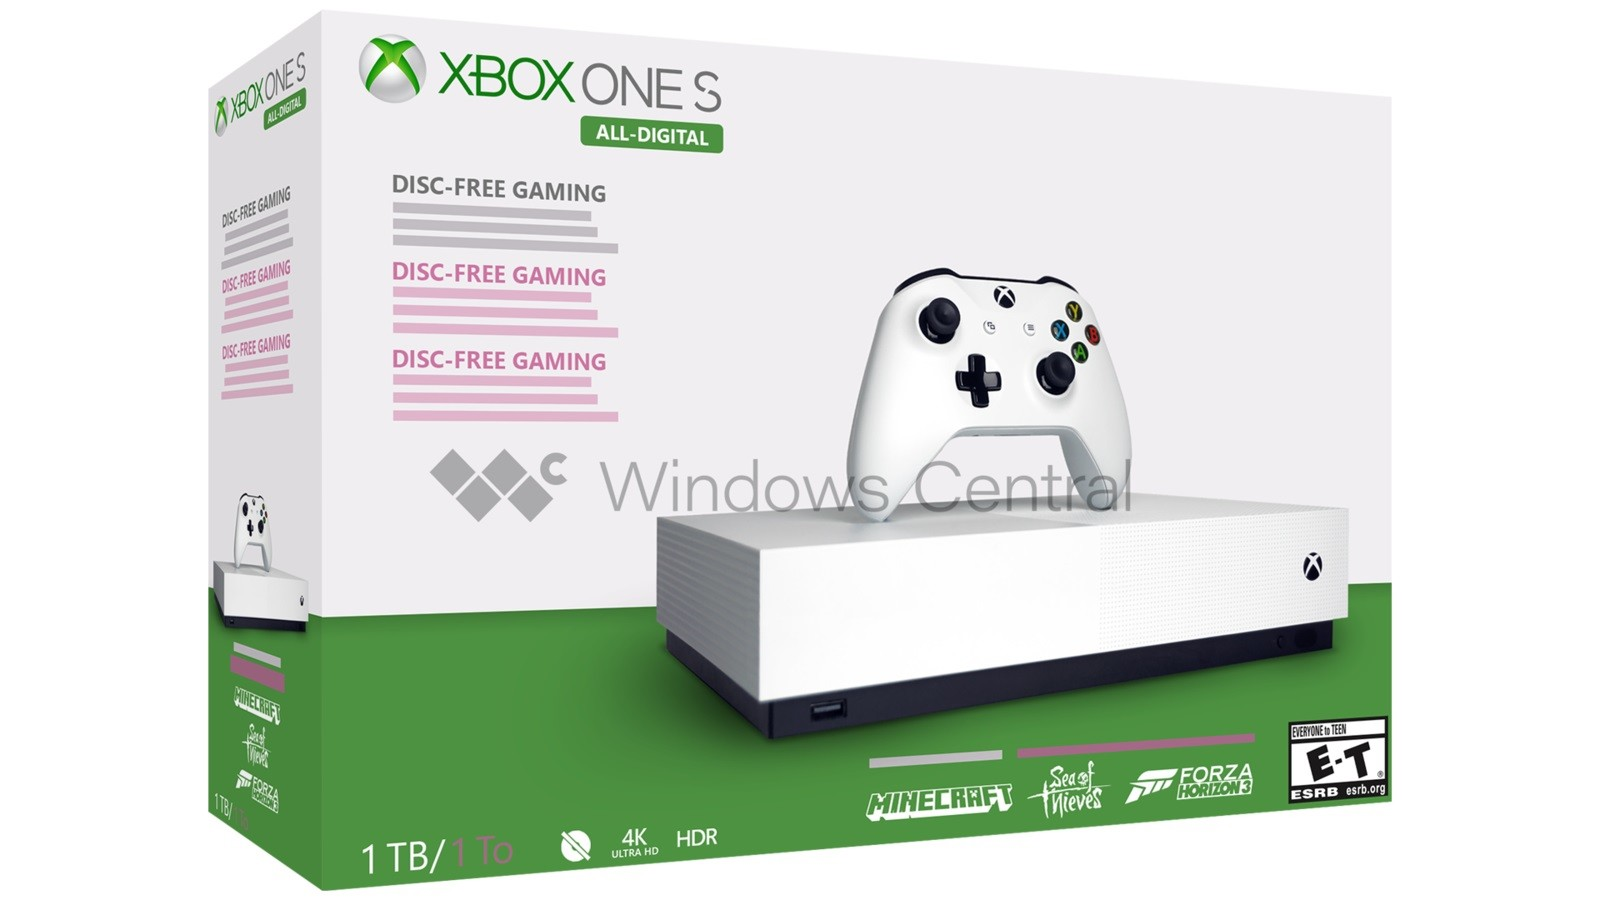 Images of the Xbox One S All-Digital Edition surface online